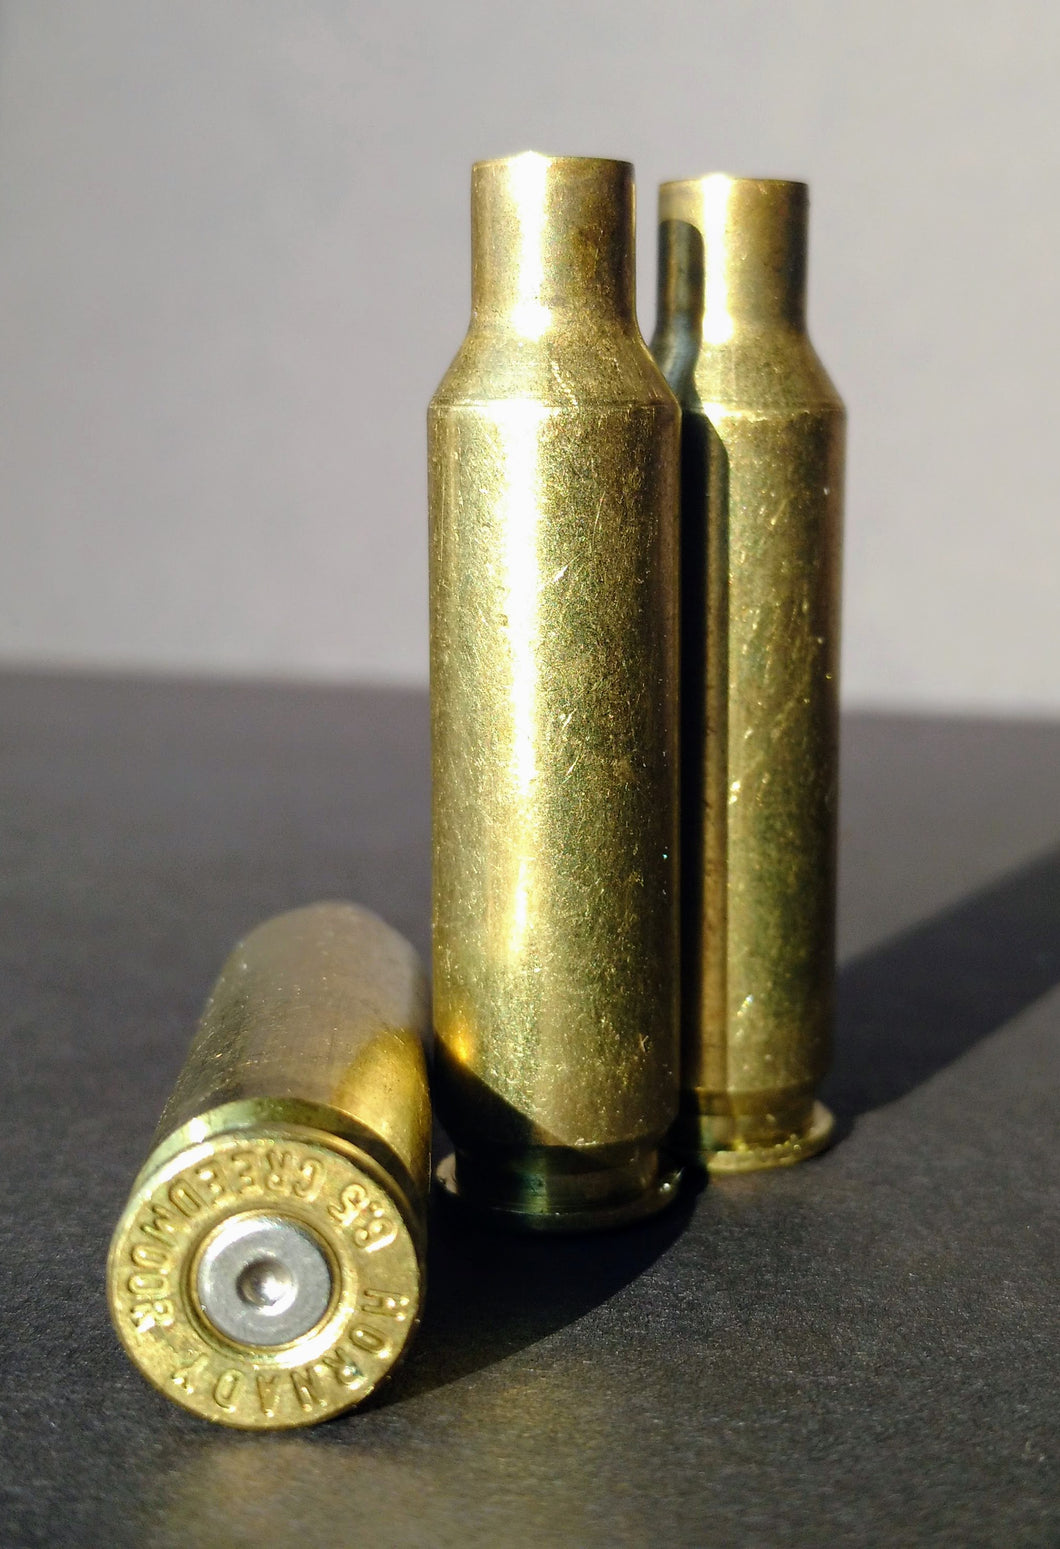 6.5 Creedmoor Mixed Headstamp Brass Cases